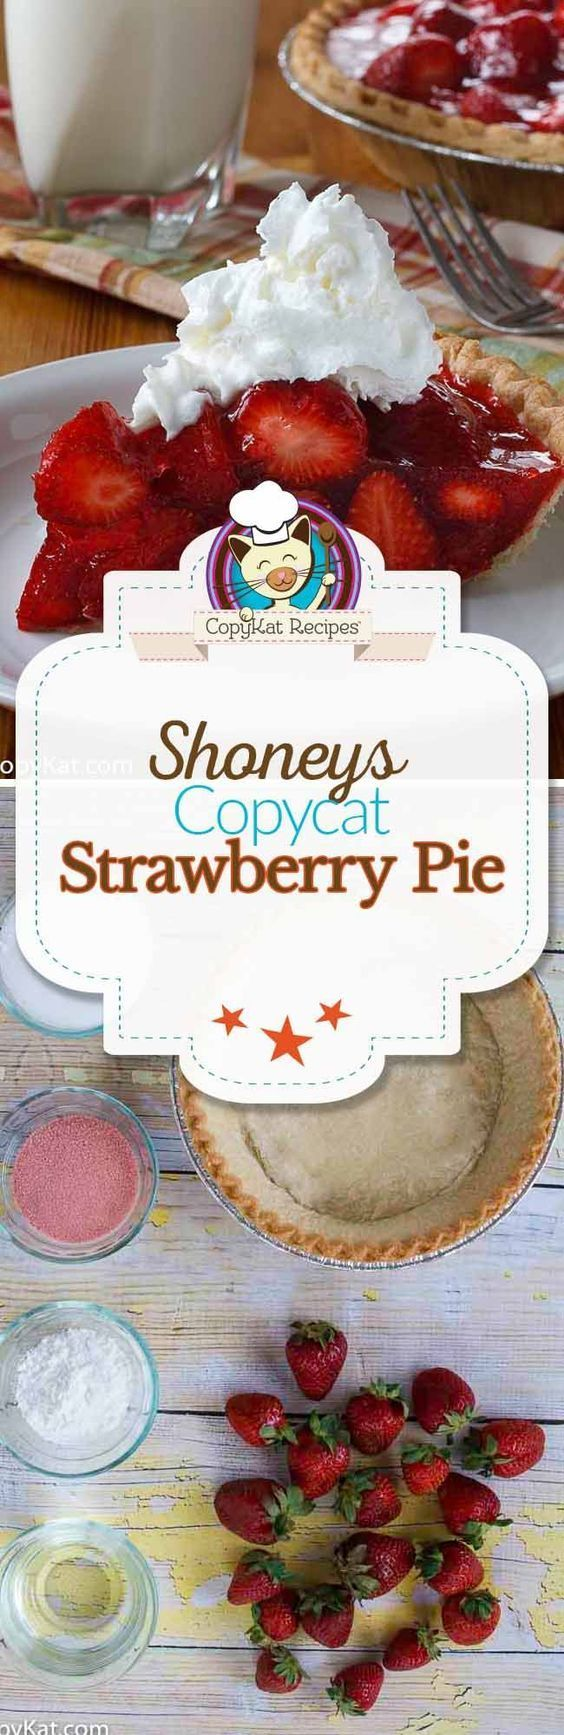 Make this copycat recipe for the famous Shoney's Strawberry Pie.